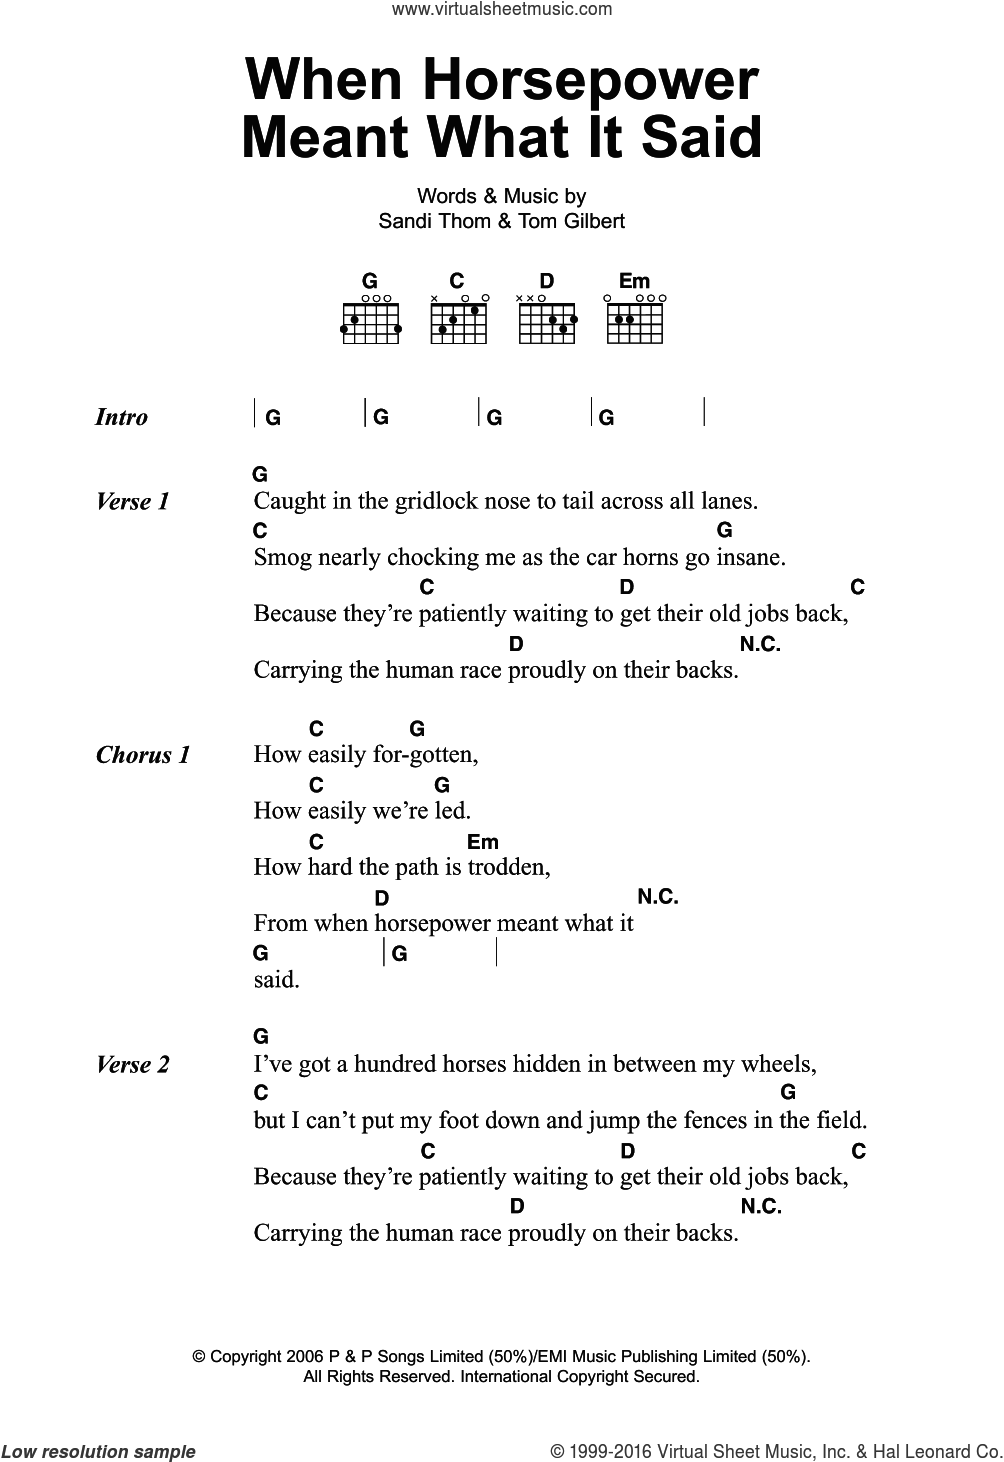 When Horsepower Meant What It Said sheet music for guitar (chords) by Tom Gilbert